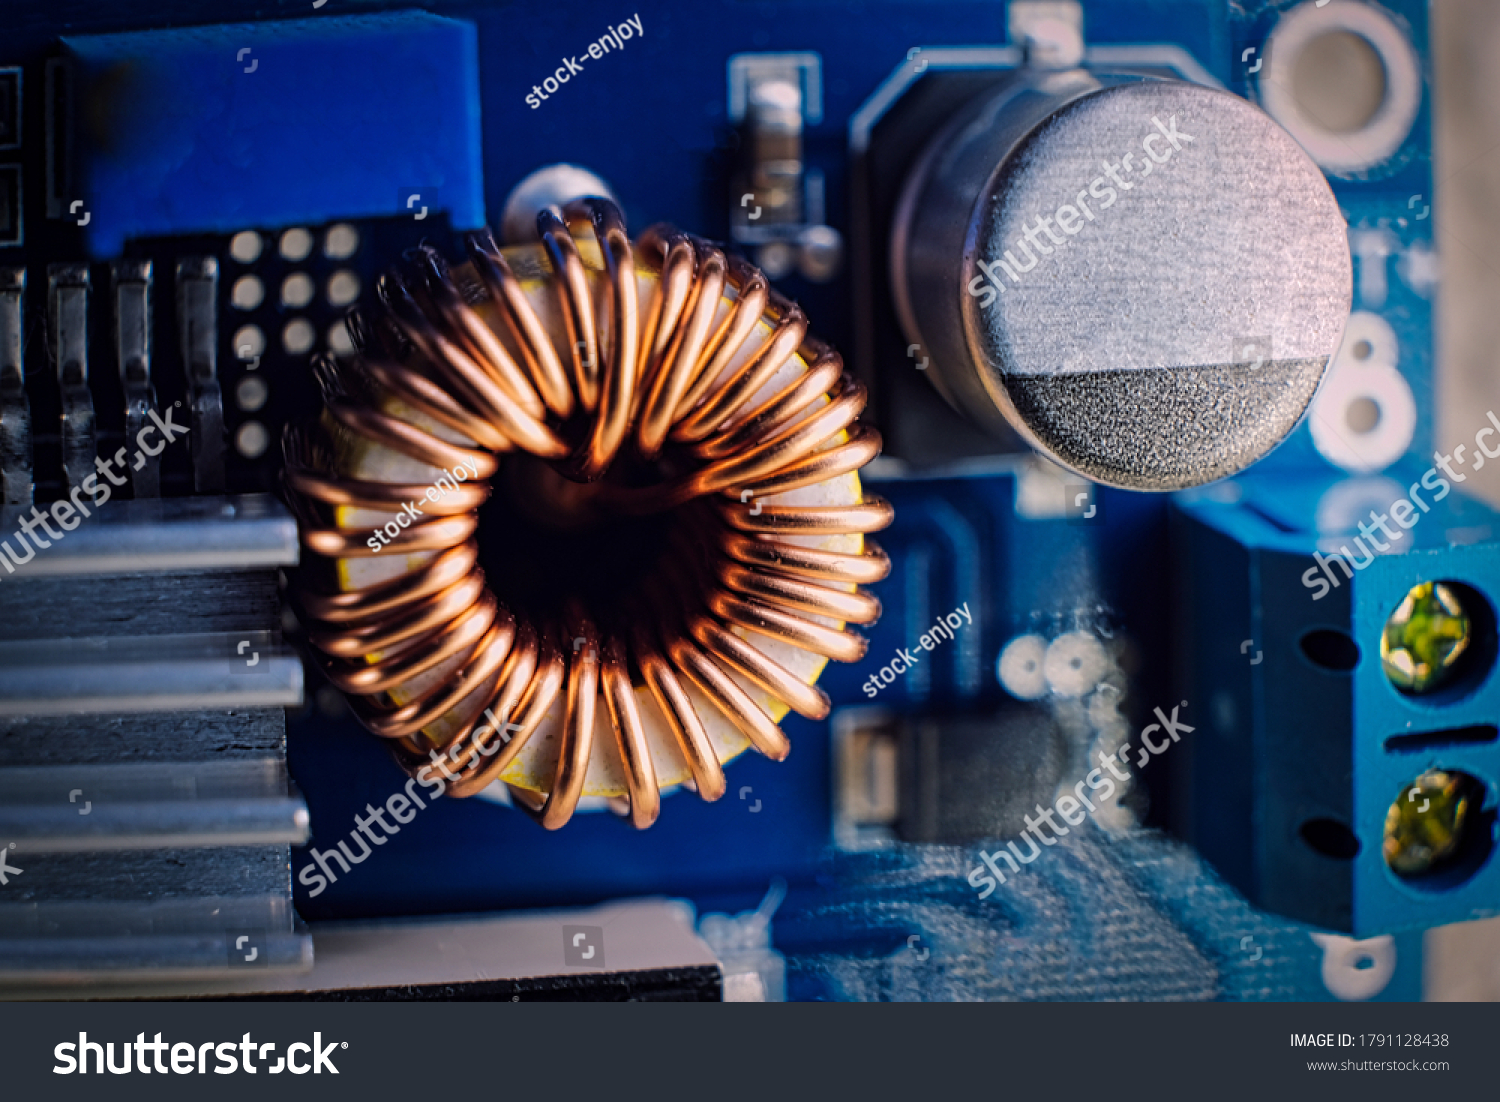 stock-photo-ferrit-inductance-coil-on-el